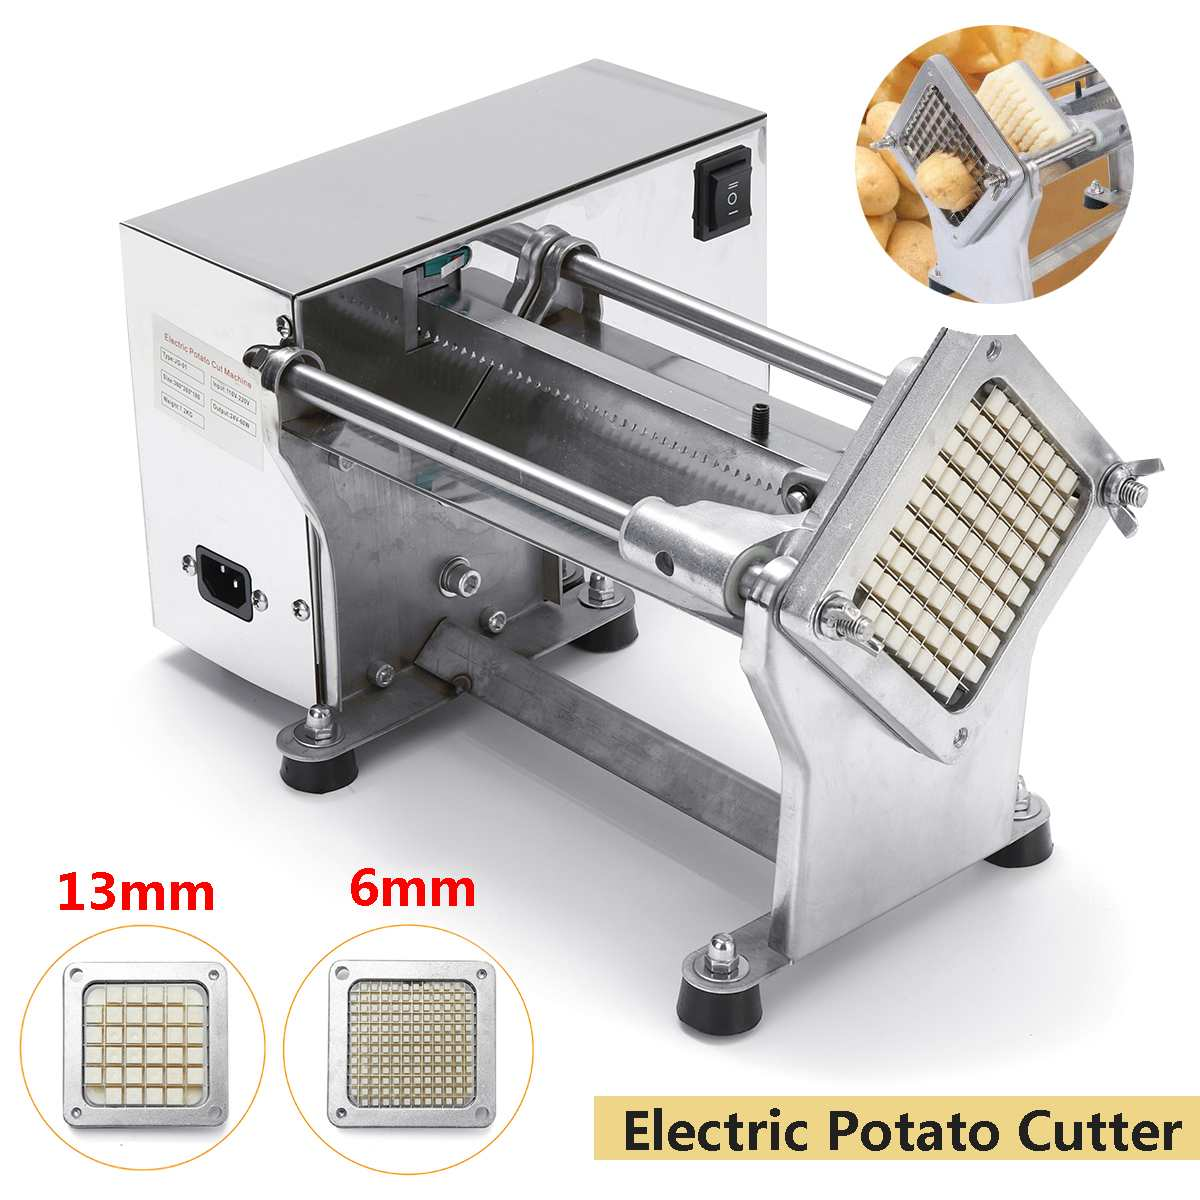 New 220V Commercial Electric French Fry Cutters Electric Potato Chip Cutter French Fries Cutting Slicer Stainless Steel Machine